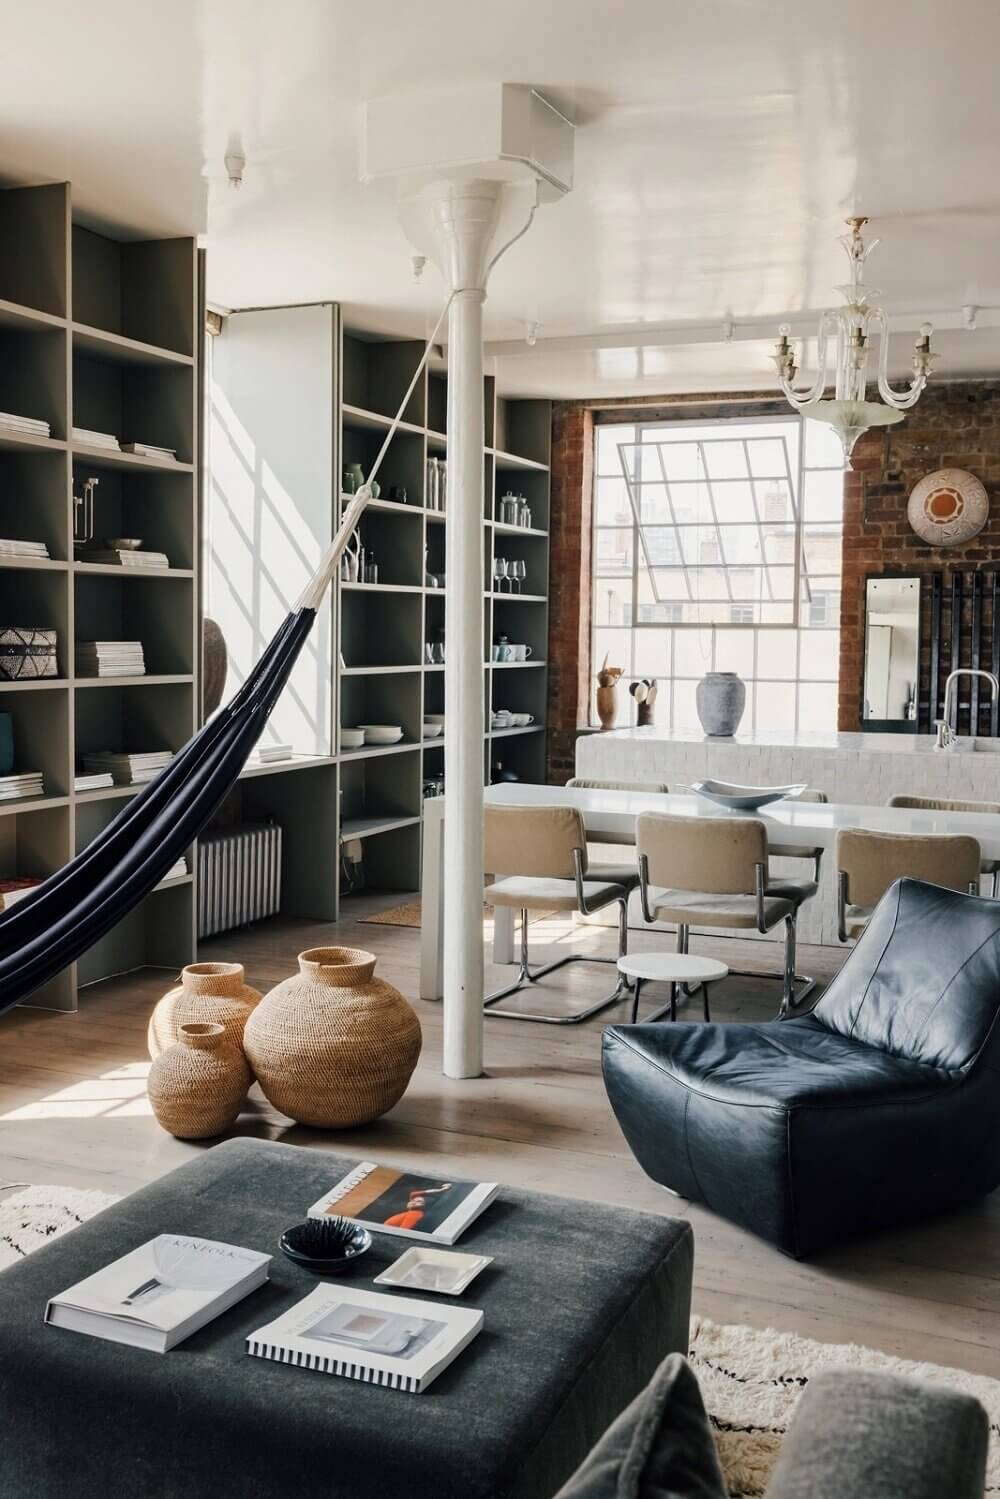 A London Loft Designed By Ilse Crawford And Vincent van Duysen